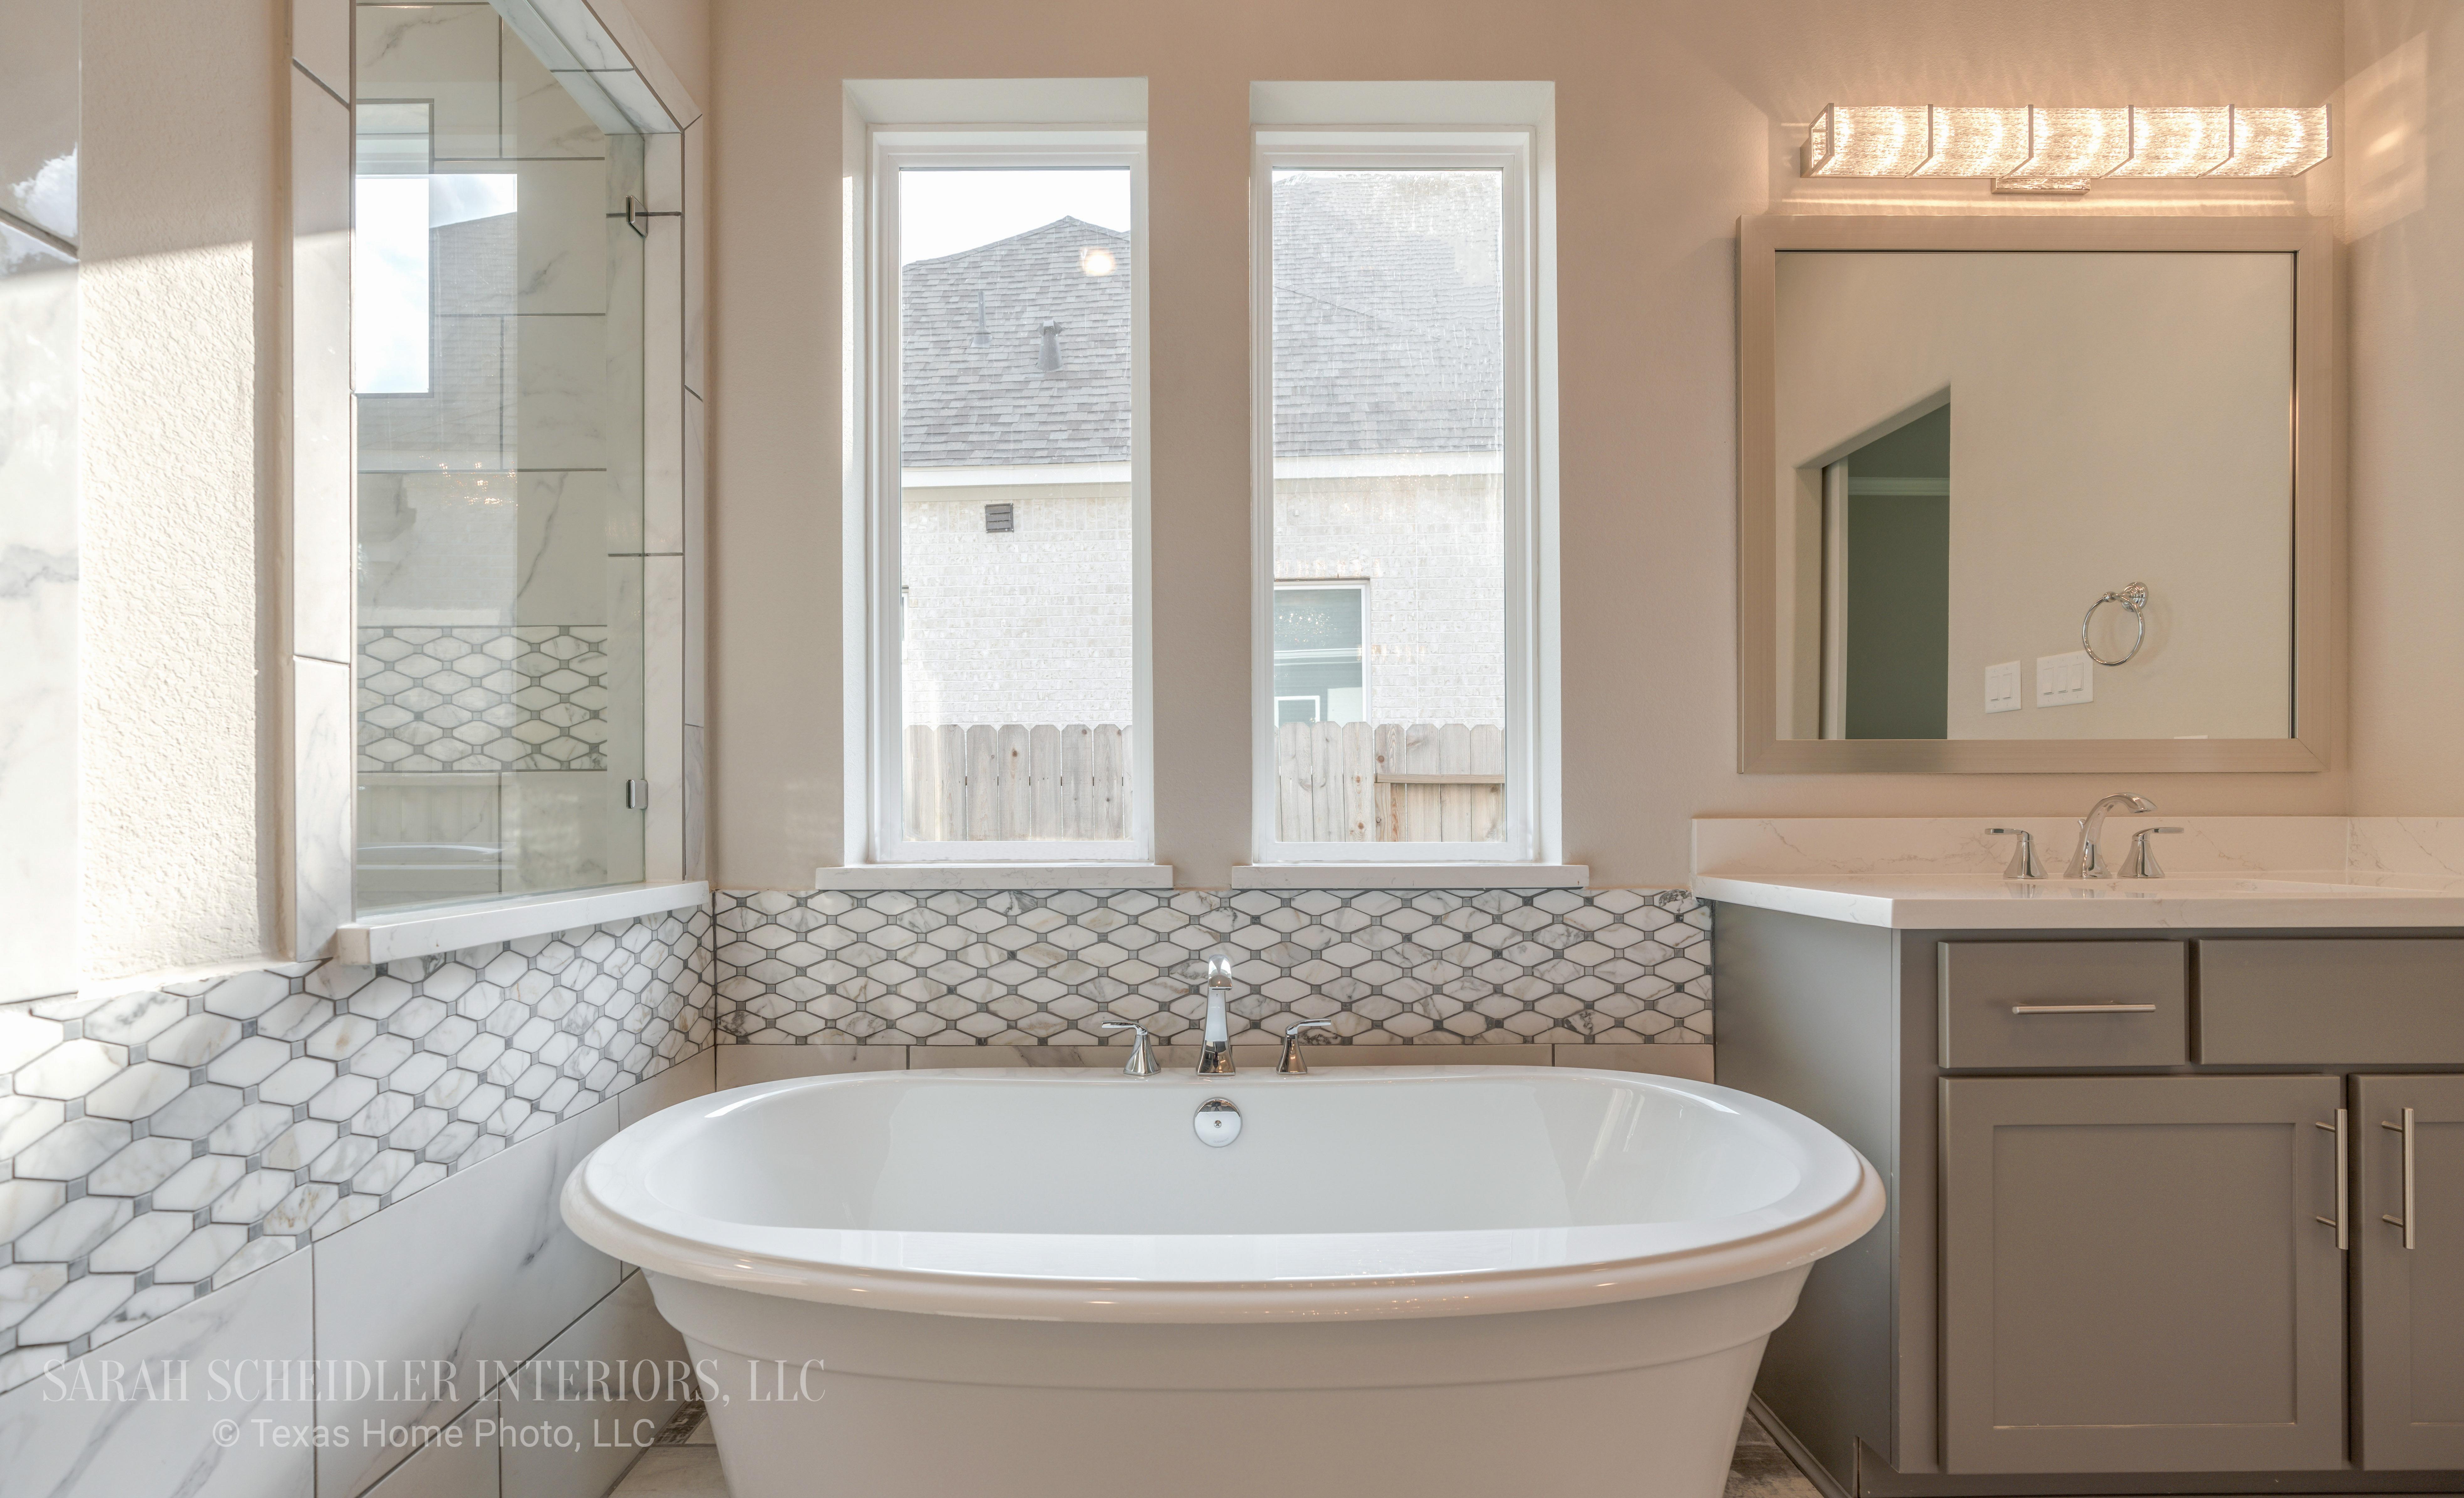 White and Grey Master Bathroom with Freestanding Tub, Grey Cabinetry, Marble Wall Accent Tile, Wood Tile Flooring, Chrome Finishes, and Crystal Lighting